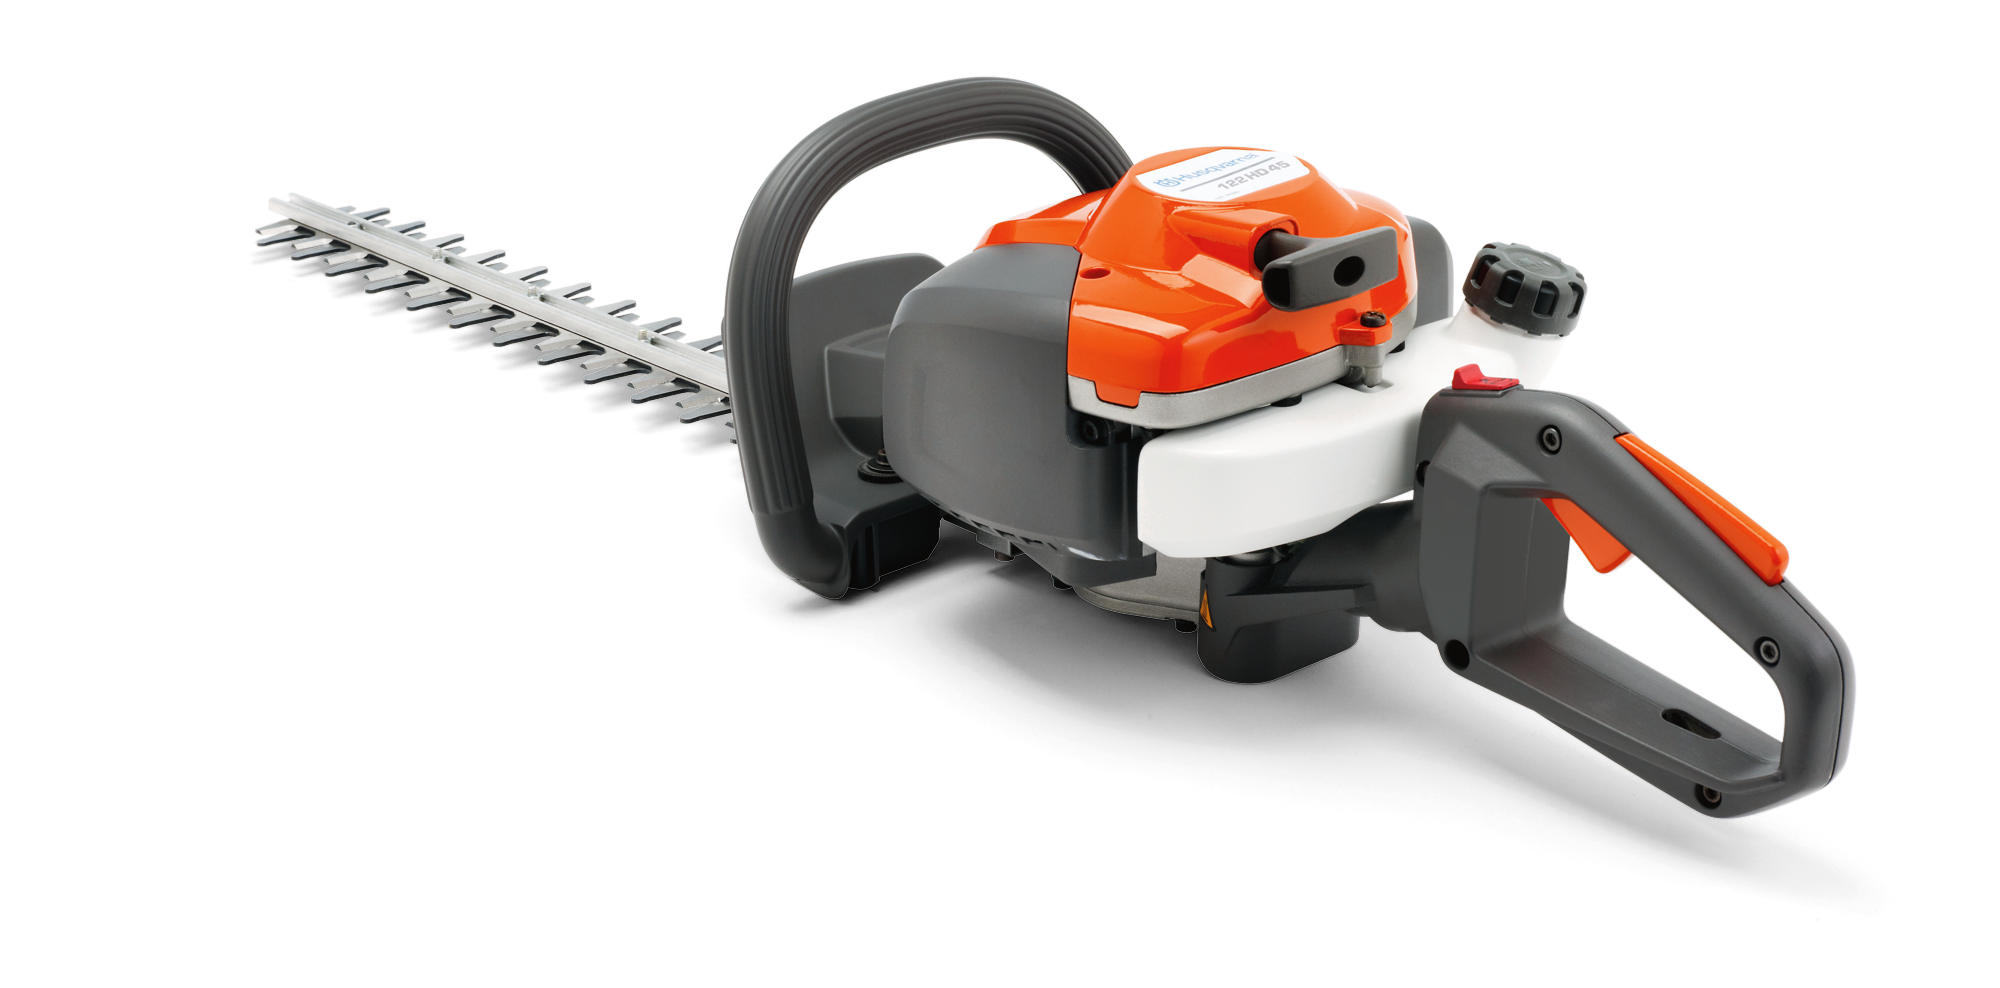 Image for 122HD45 Gas Hedge Trimmer                                                                                                        from HusqvarnaB2C